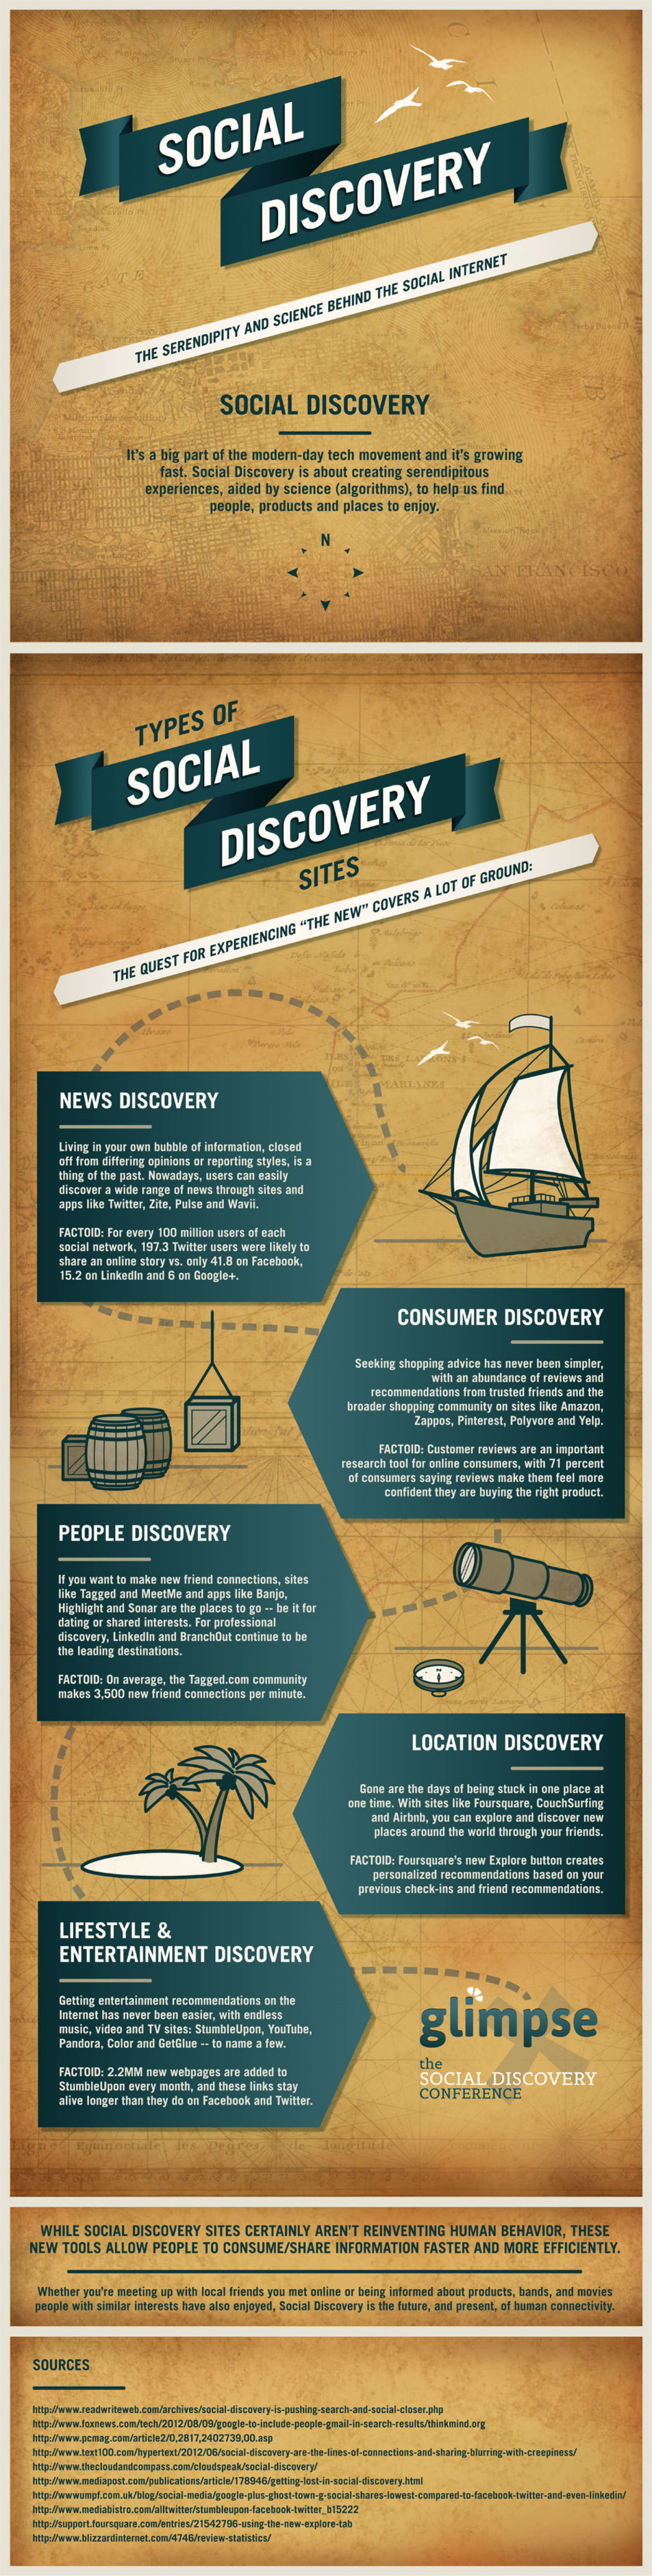 Social Discovery: The Serendipity and Science Behind the Social Internet  Infographic